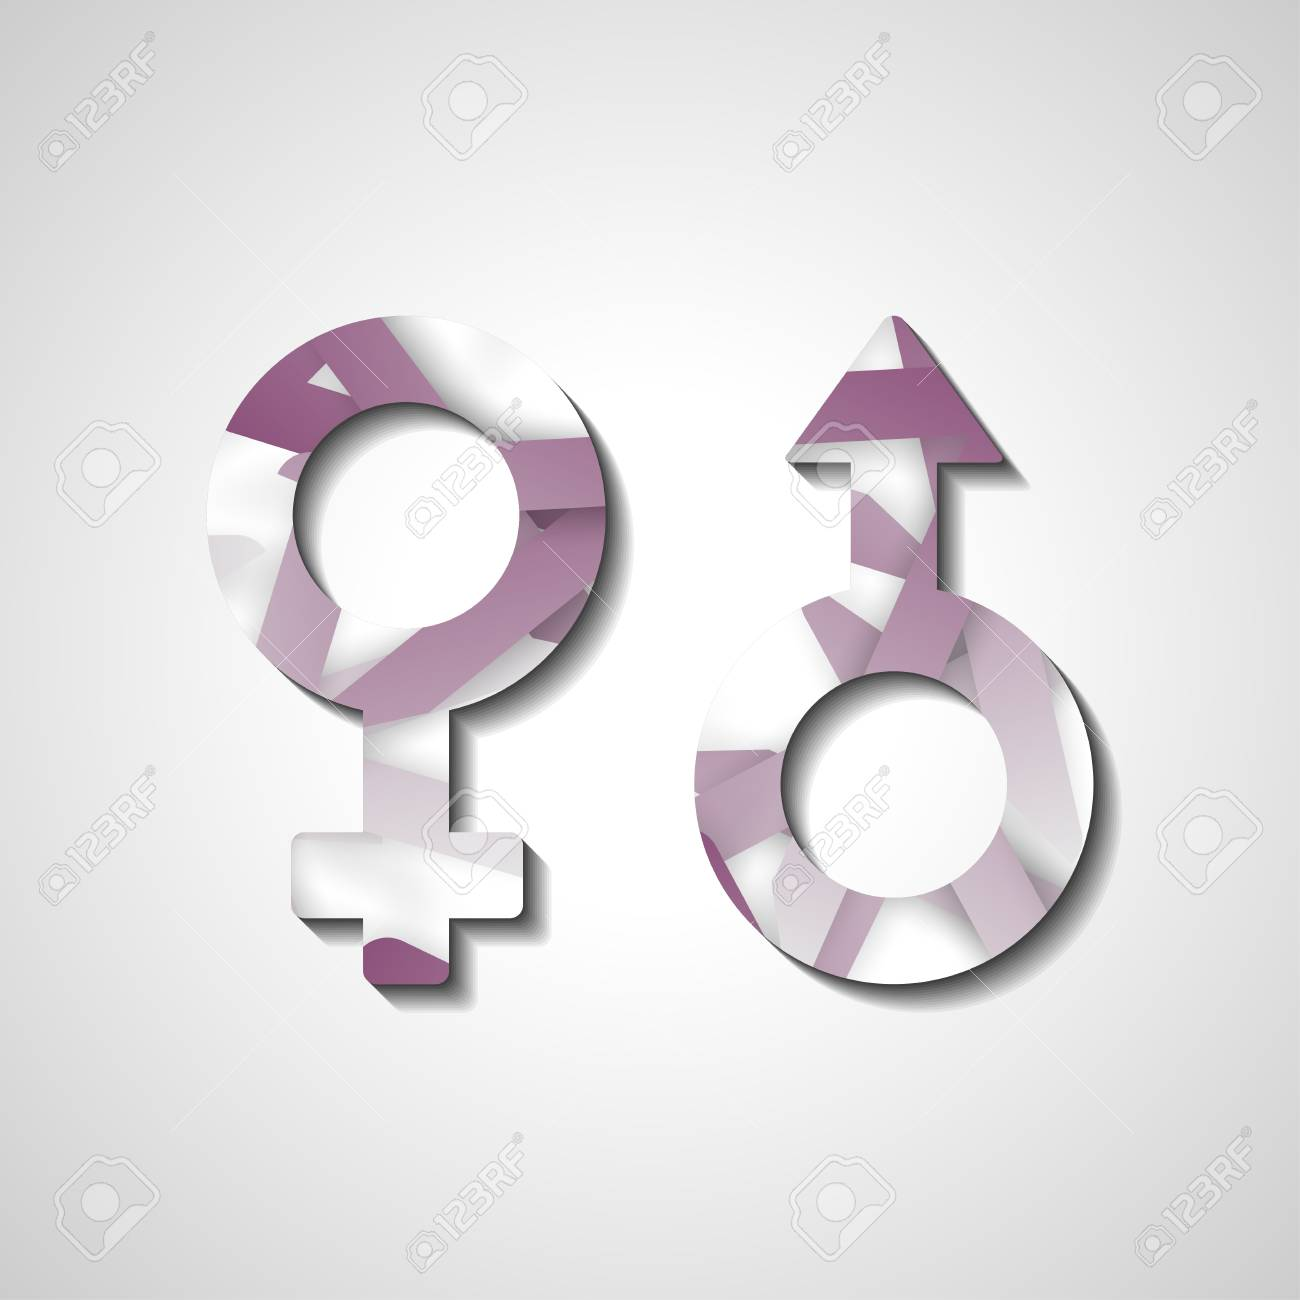 Male And Female Gender Symbols Style Illustration Royalty Free